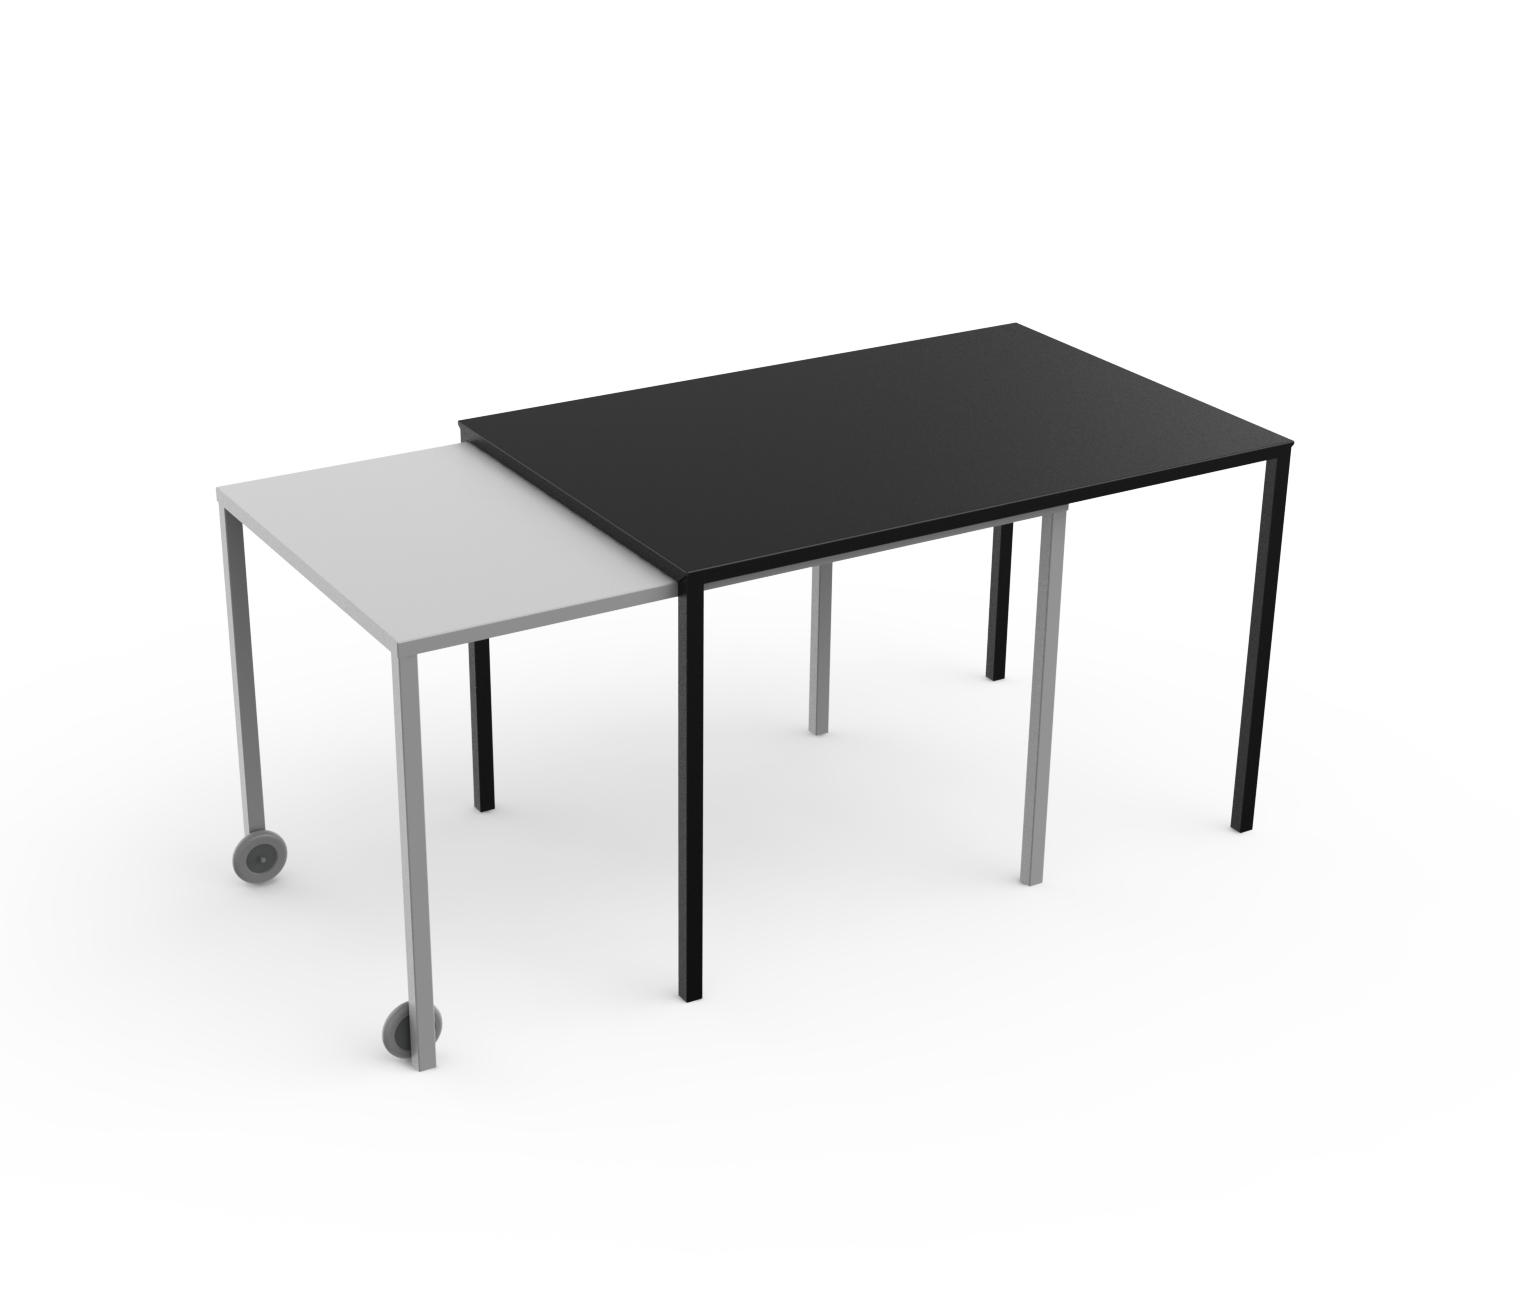 Rafale S Table Dining Tables From Matiere Grise Architonic